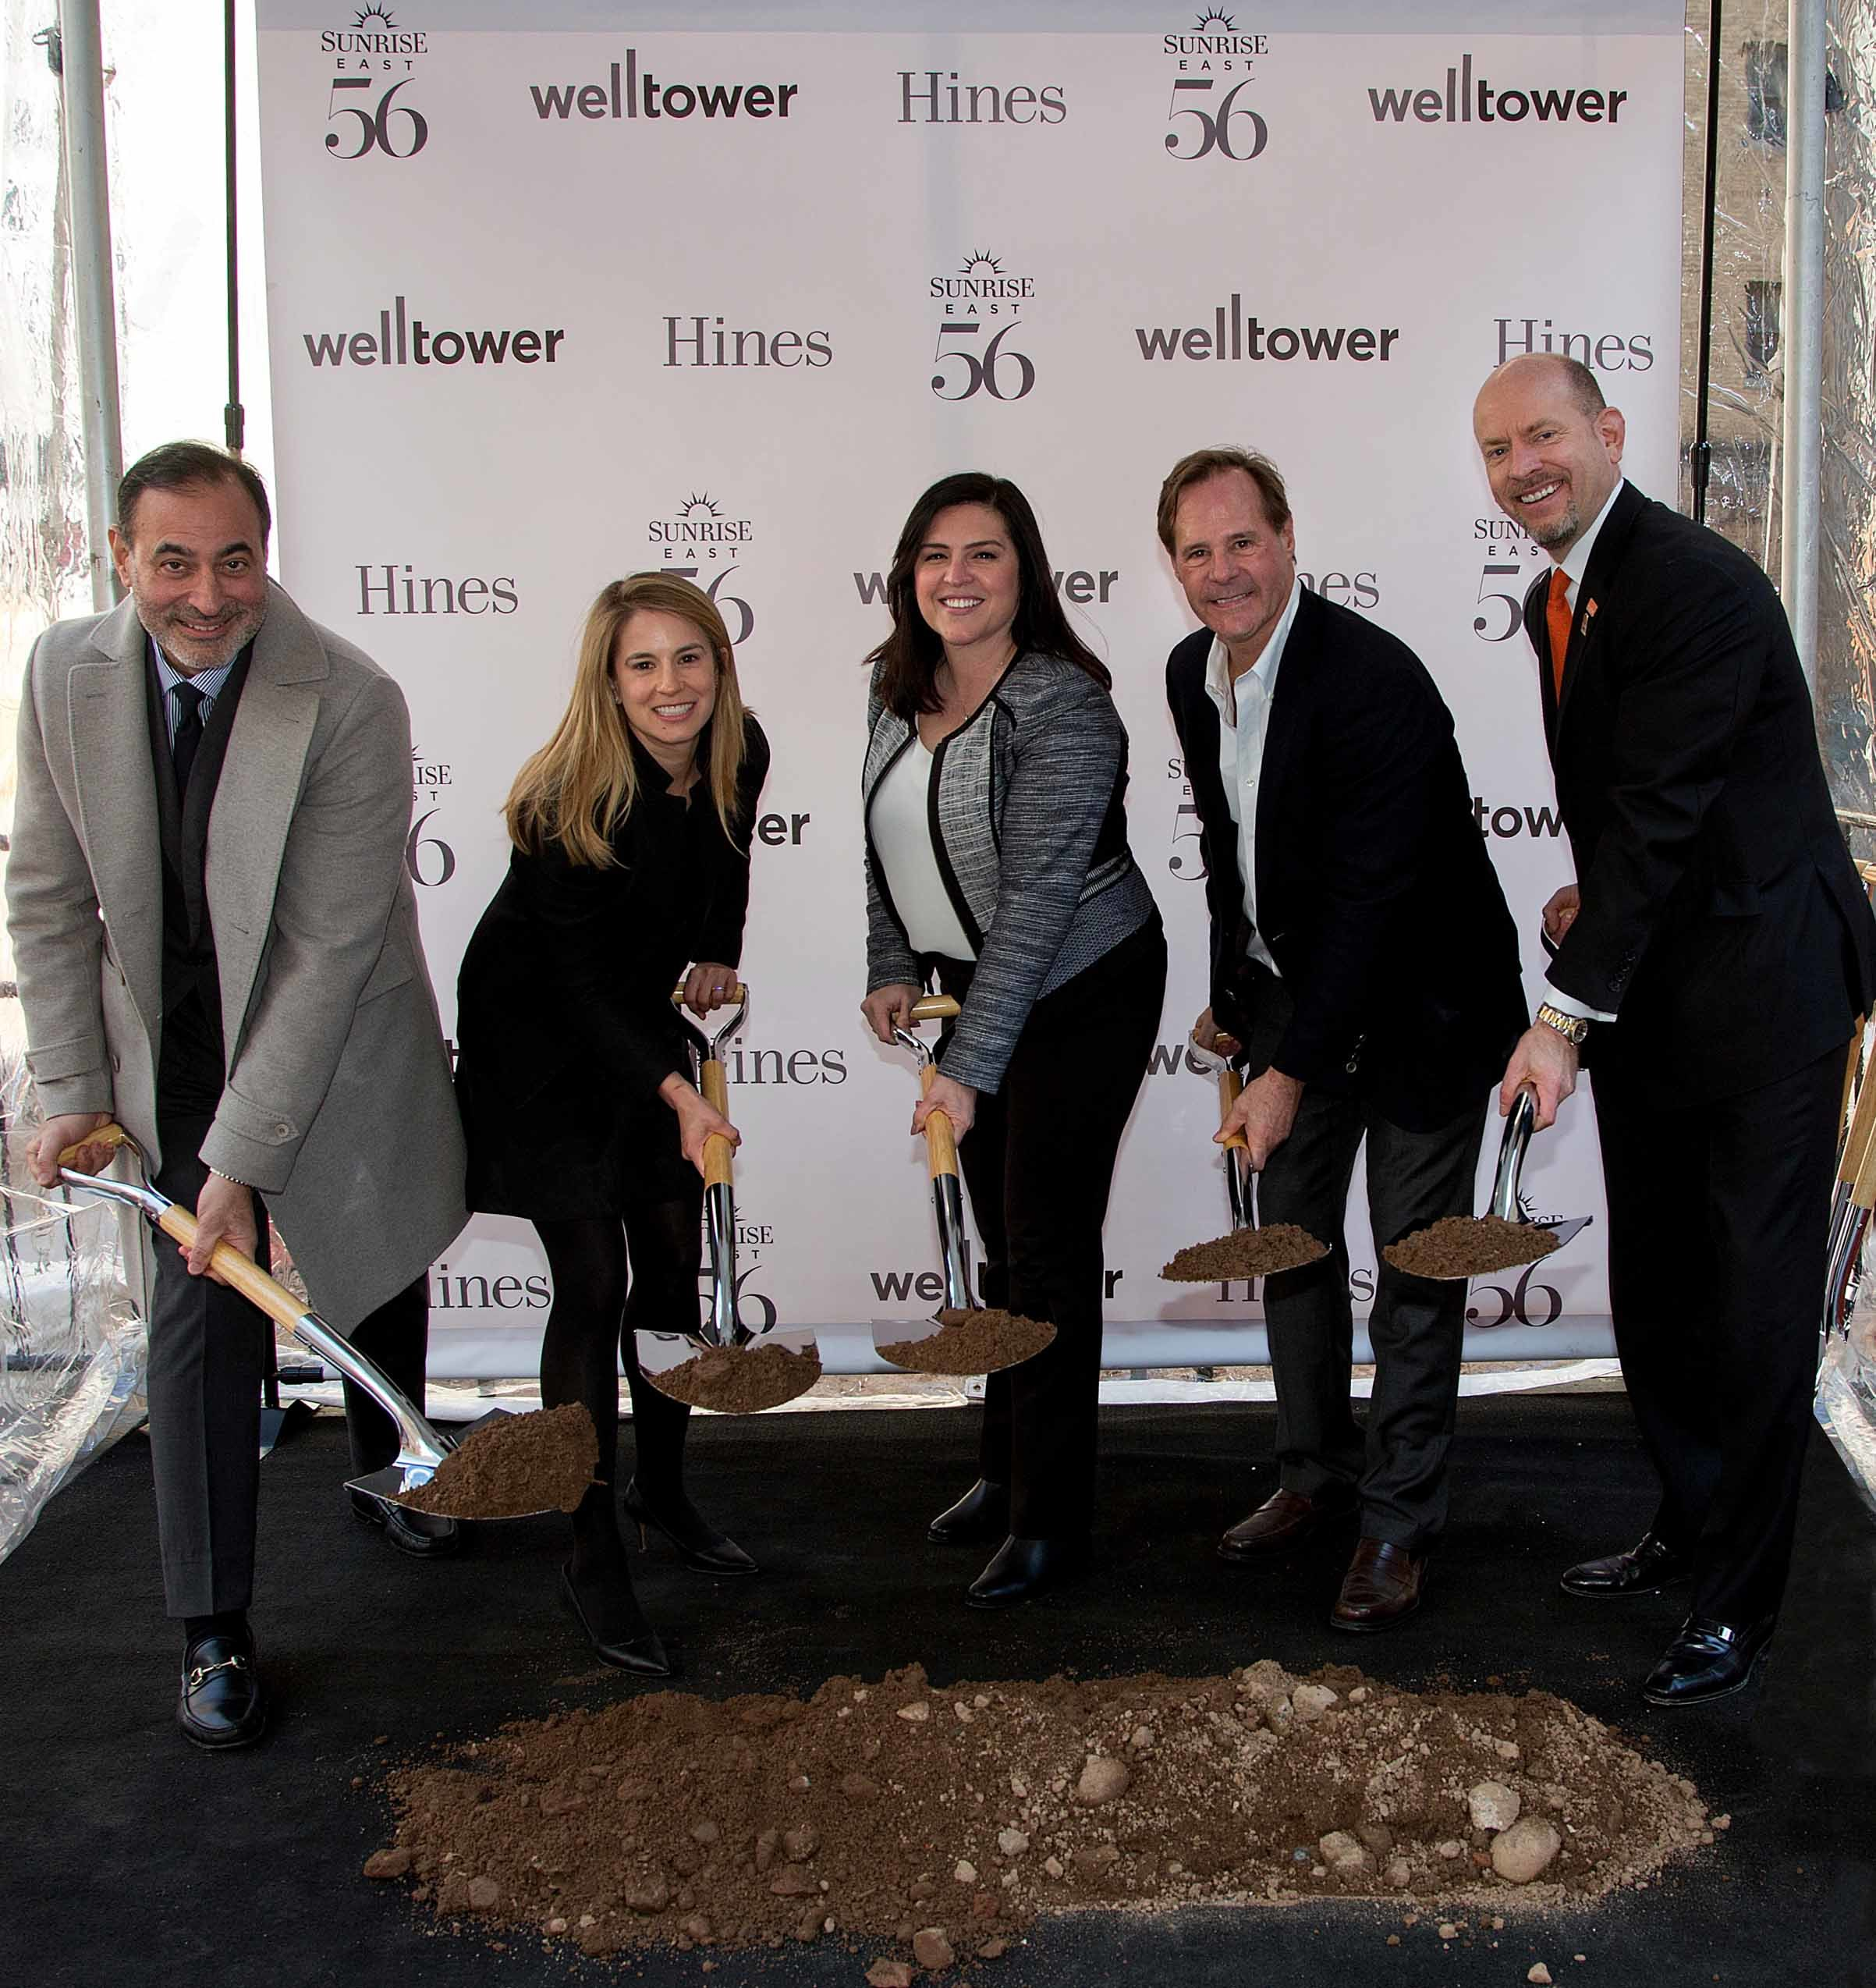 Pictured left to right: Tom DeRosa, CEO and director of Welltower; Sarah Hawkins, Hines managing director; Mercedes Kerr, executive vice president of Welltower; Tommy Craig, Hines senior managing director; and Chris Winkle, CEO of Sunrise Senior Living.